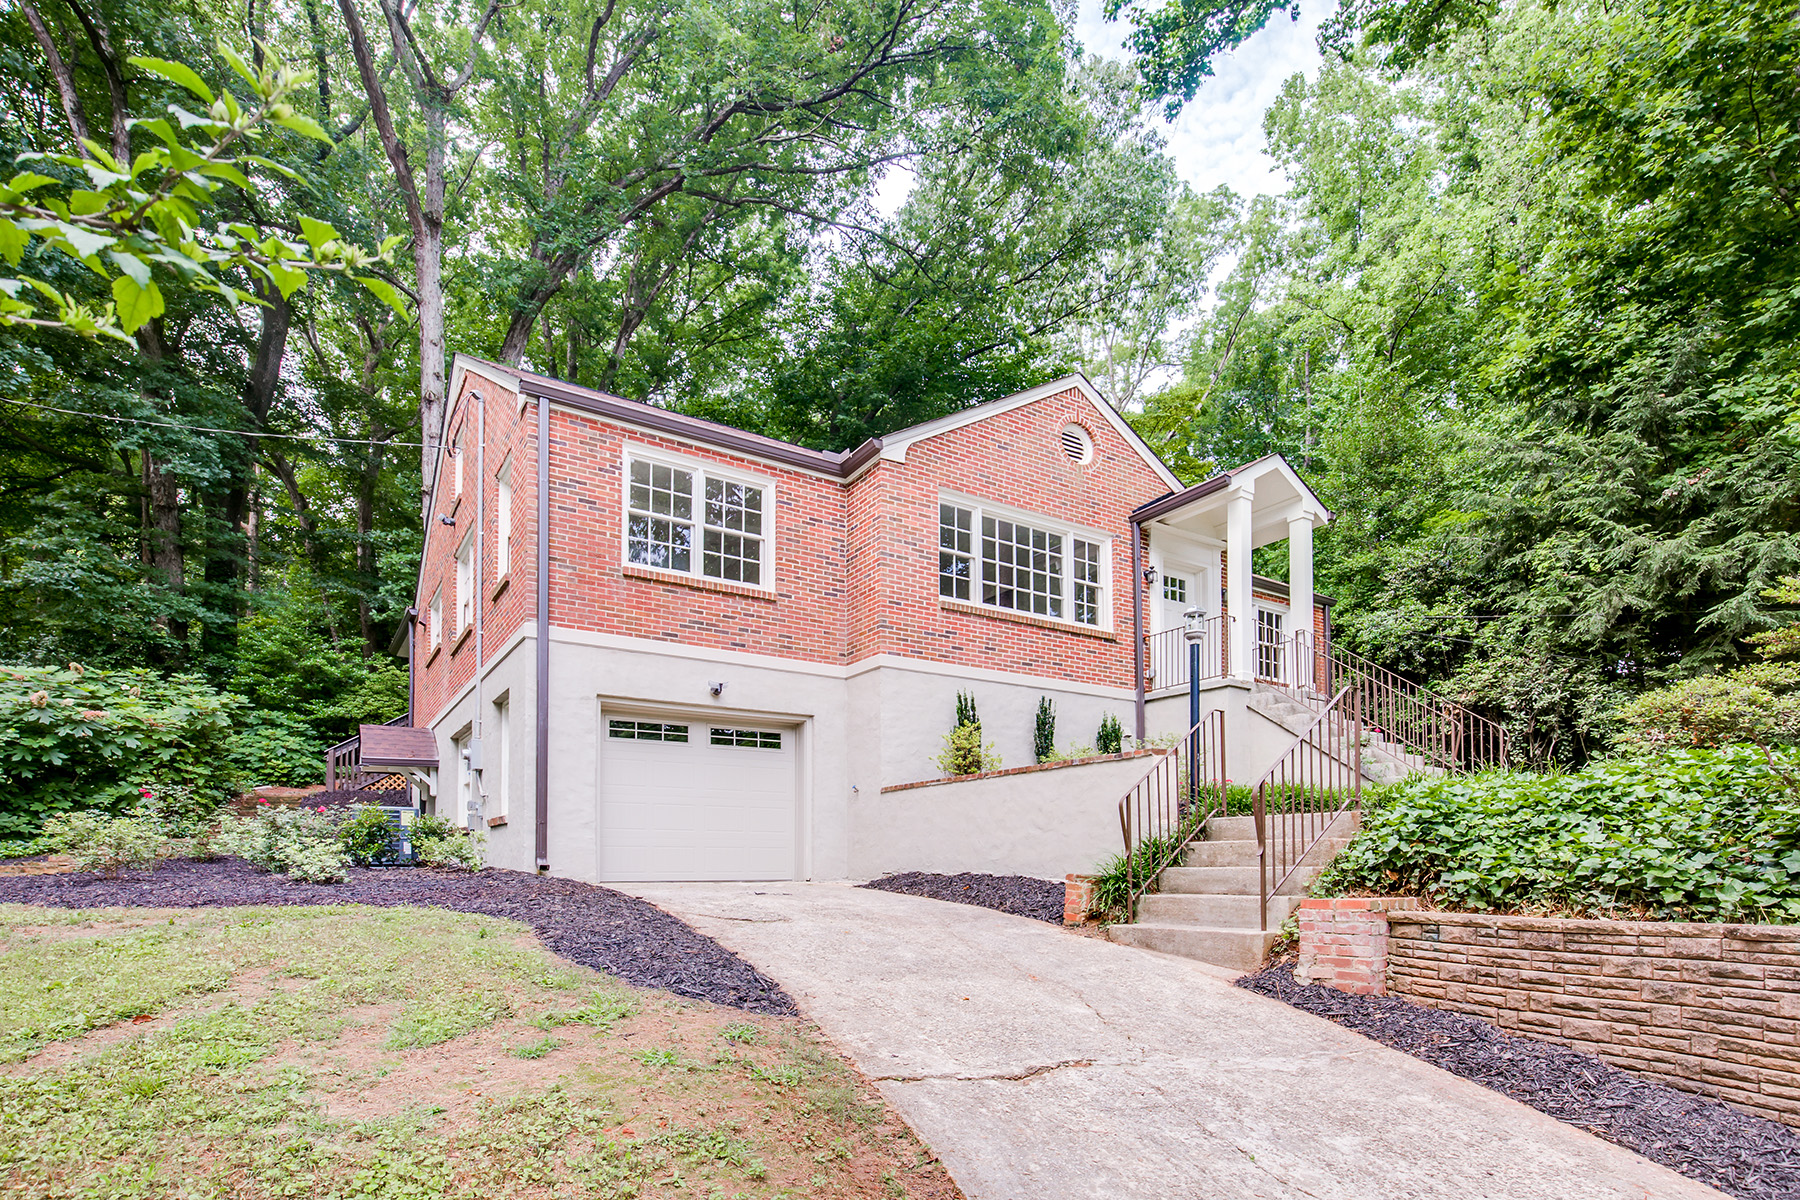 Single Family Home for Sale at Renovated Open Concept With Master Suite On The Main Floor 1663 E Clifton Road NE Atlanta, Georgia 30307 United States